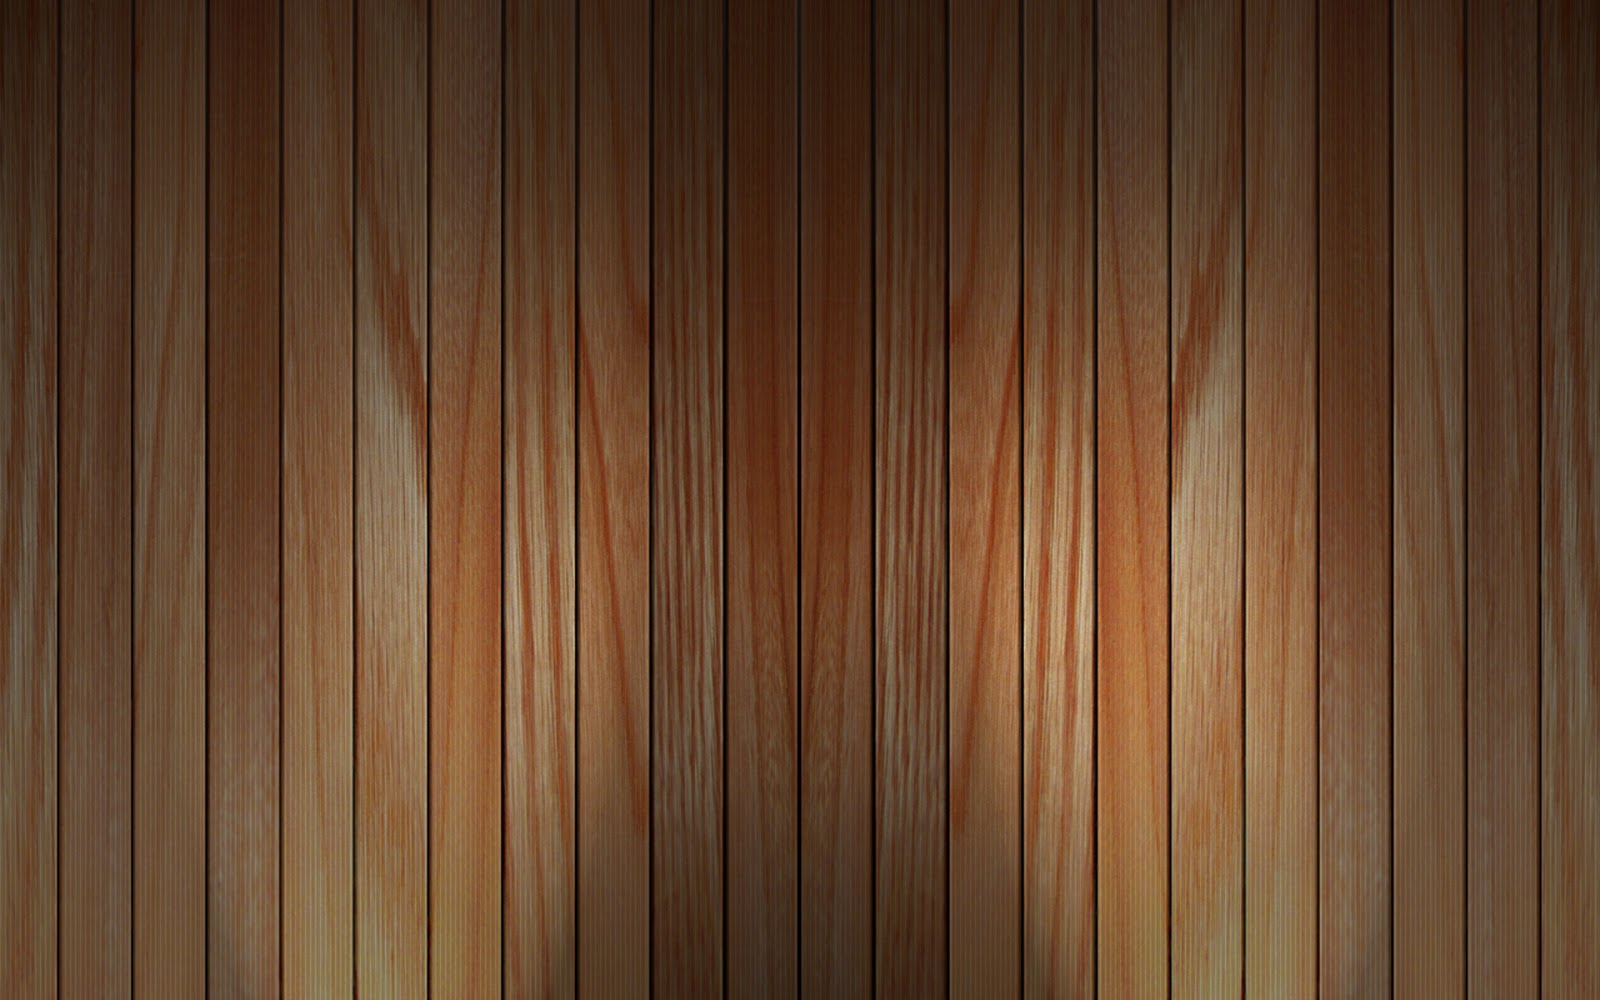 3D Wood Plank Wallpaper - WallpaperSafari